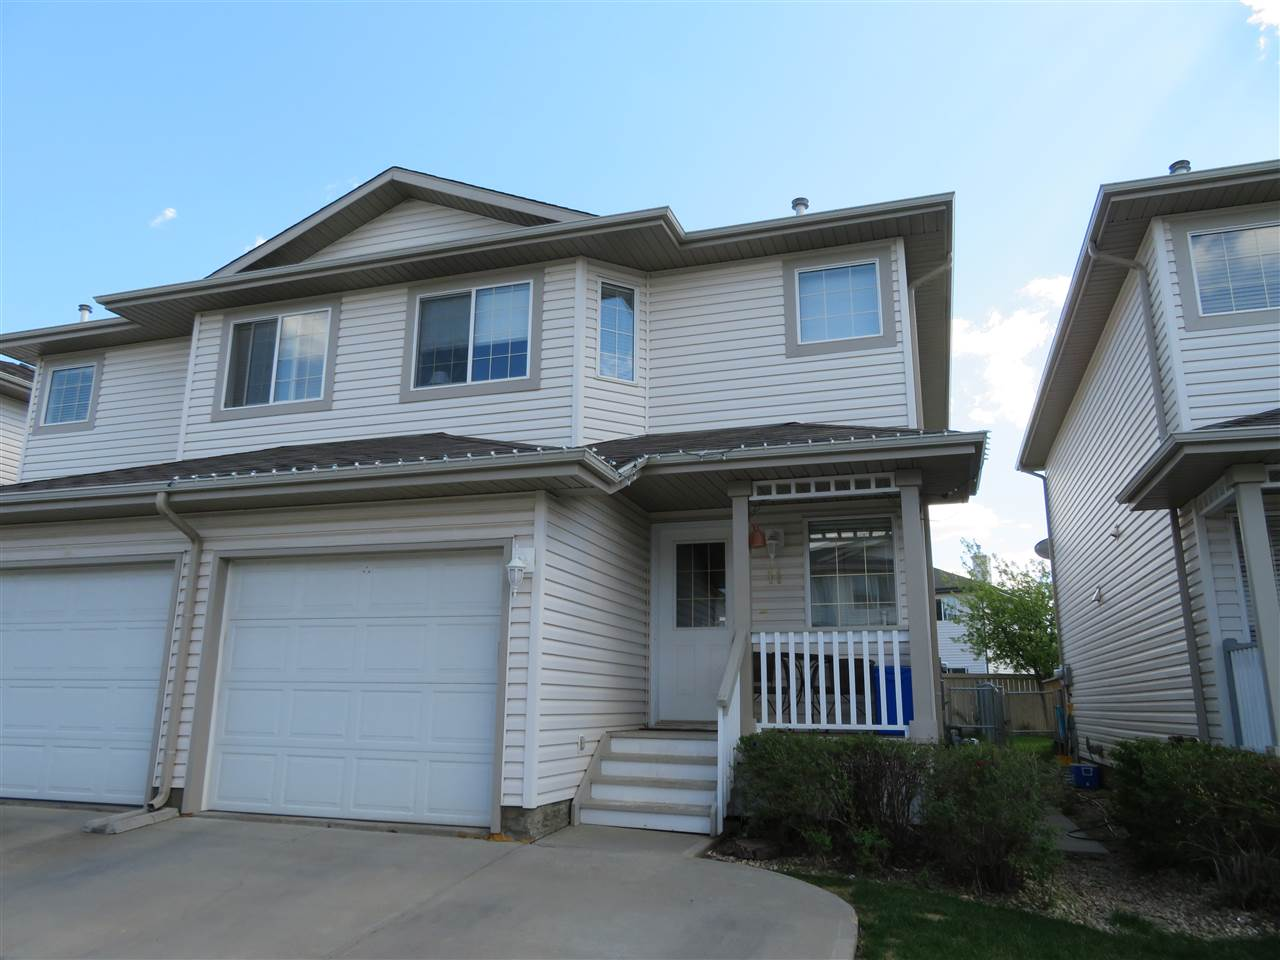 Main Photo: 11 16933 115 Street in Edmonton: Zone 27 House Half Duplex for sale : MLS(r) # E4065404